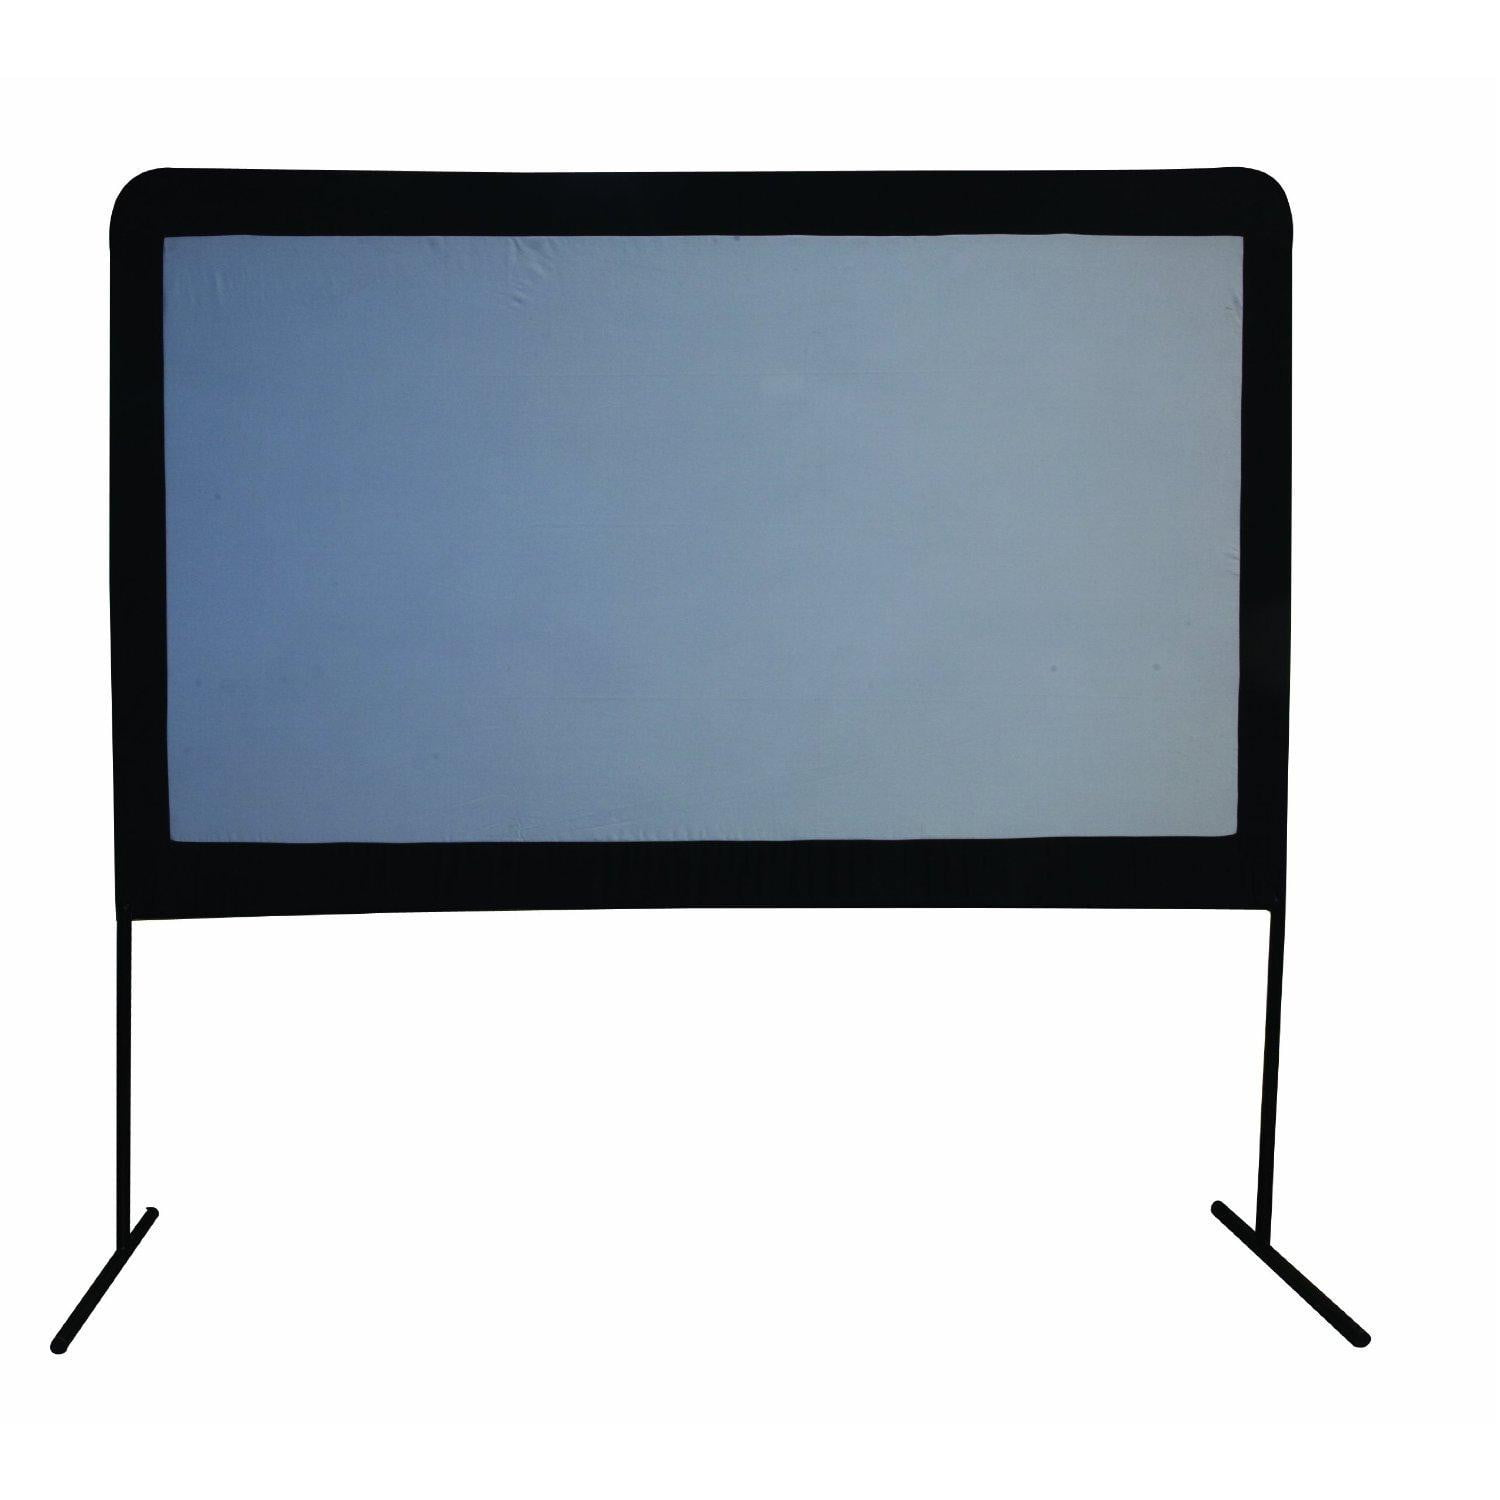 Projector Screen Pictures to Pin on Pinterest - ThePinsta